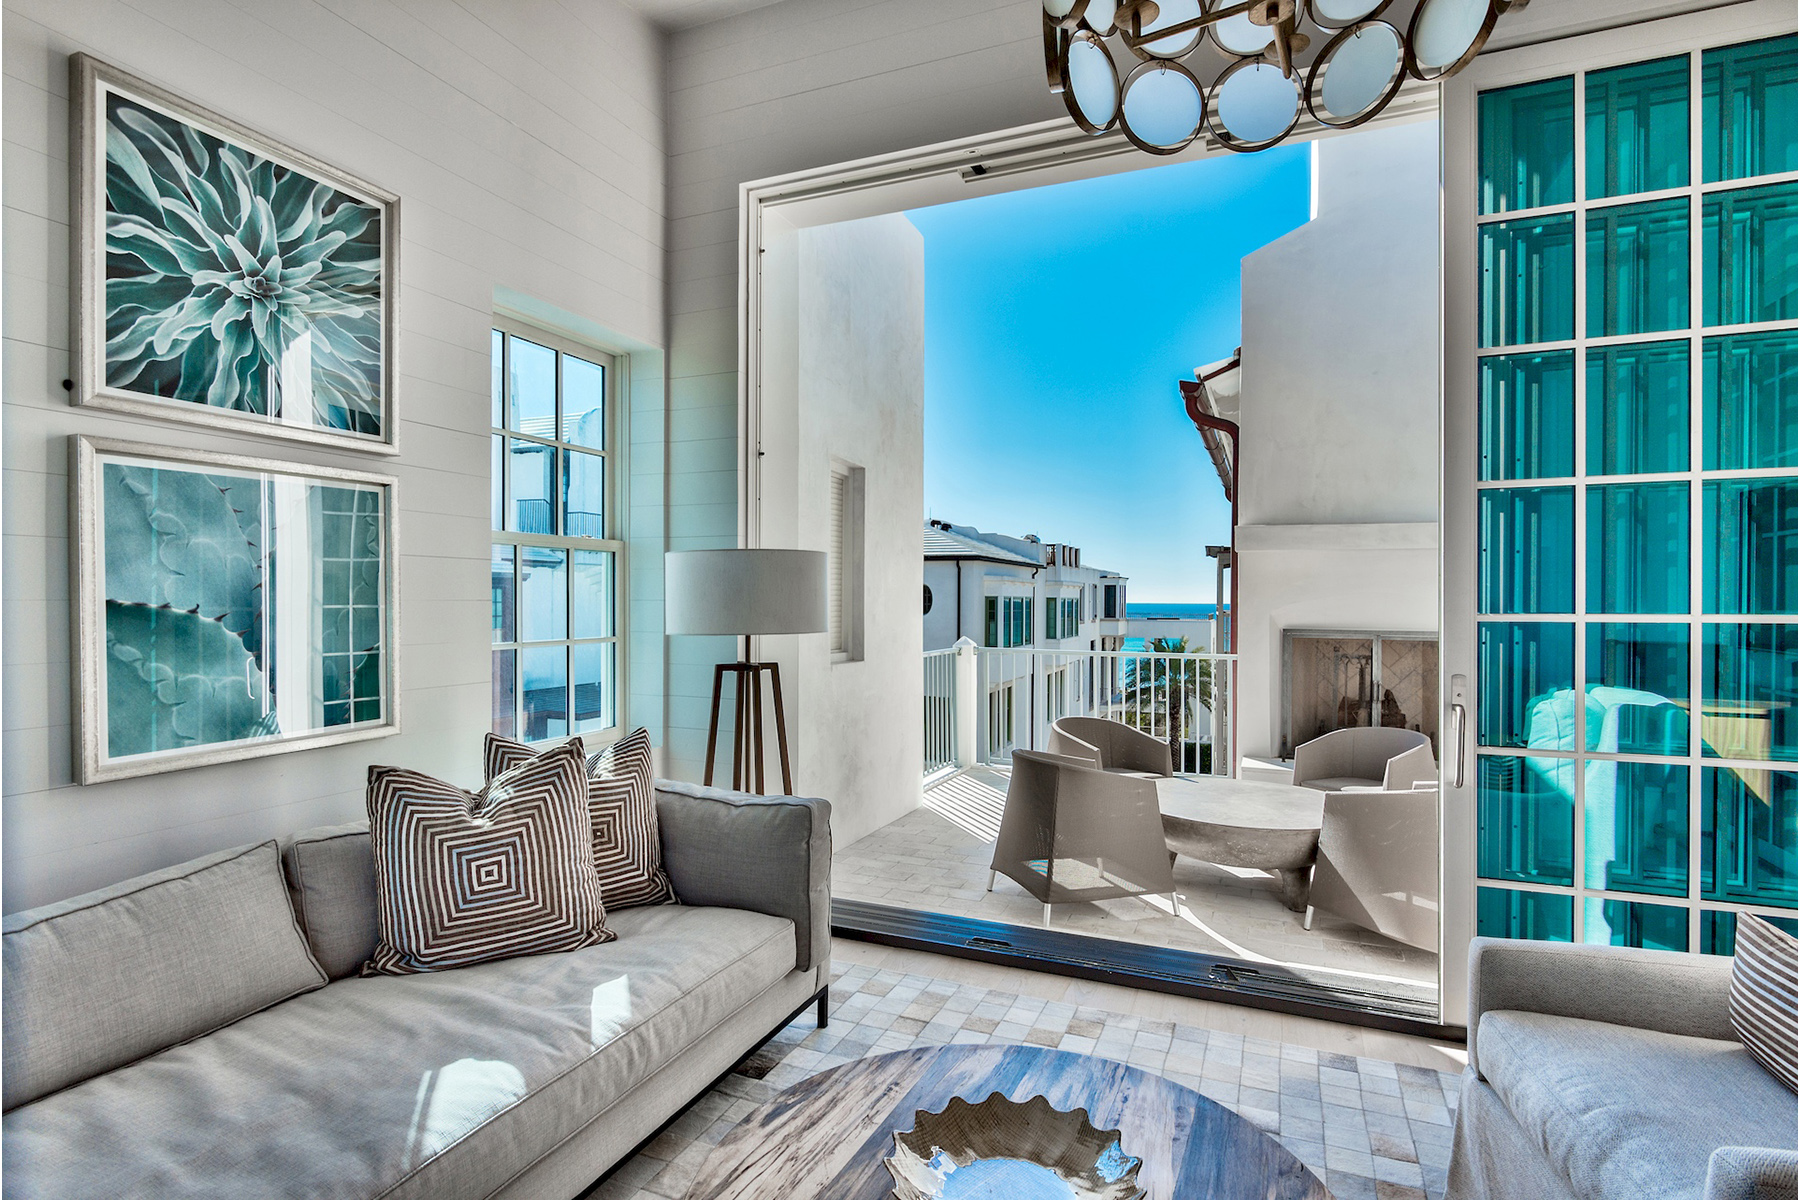 Additional photo for property listing at Uniquely Designed Modern Beach House with Exquisite Style 53 Sea Venture Alley Alys Beach, Florida 32461 United States